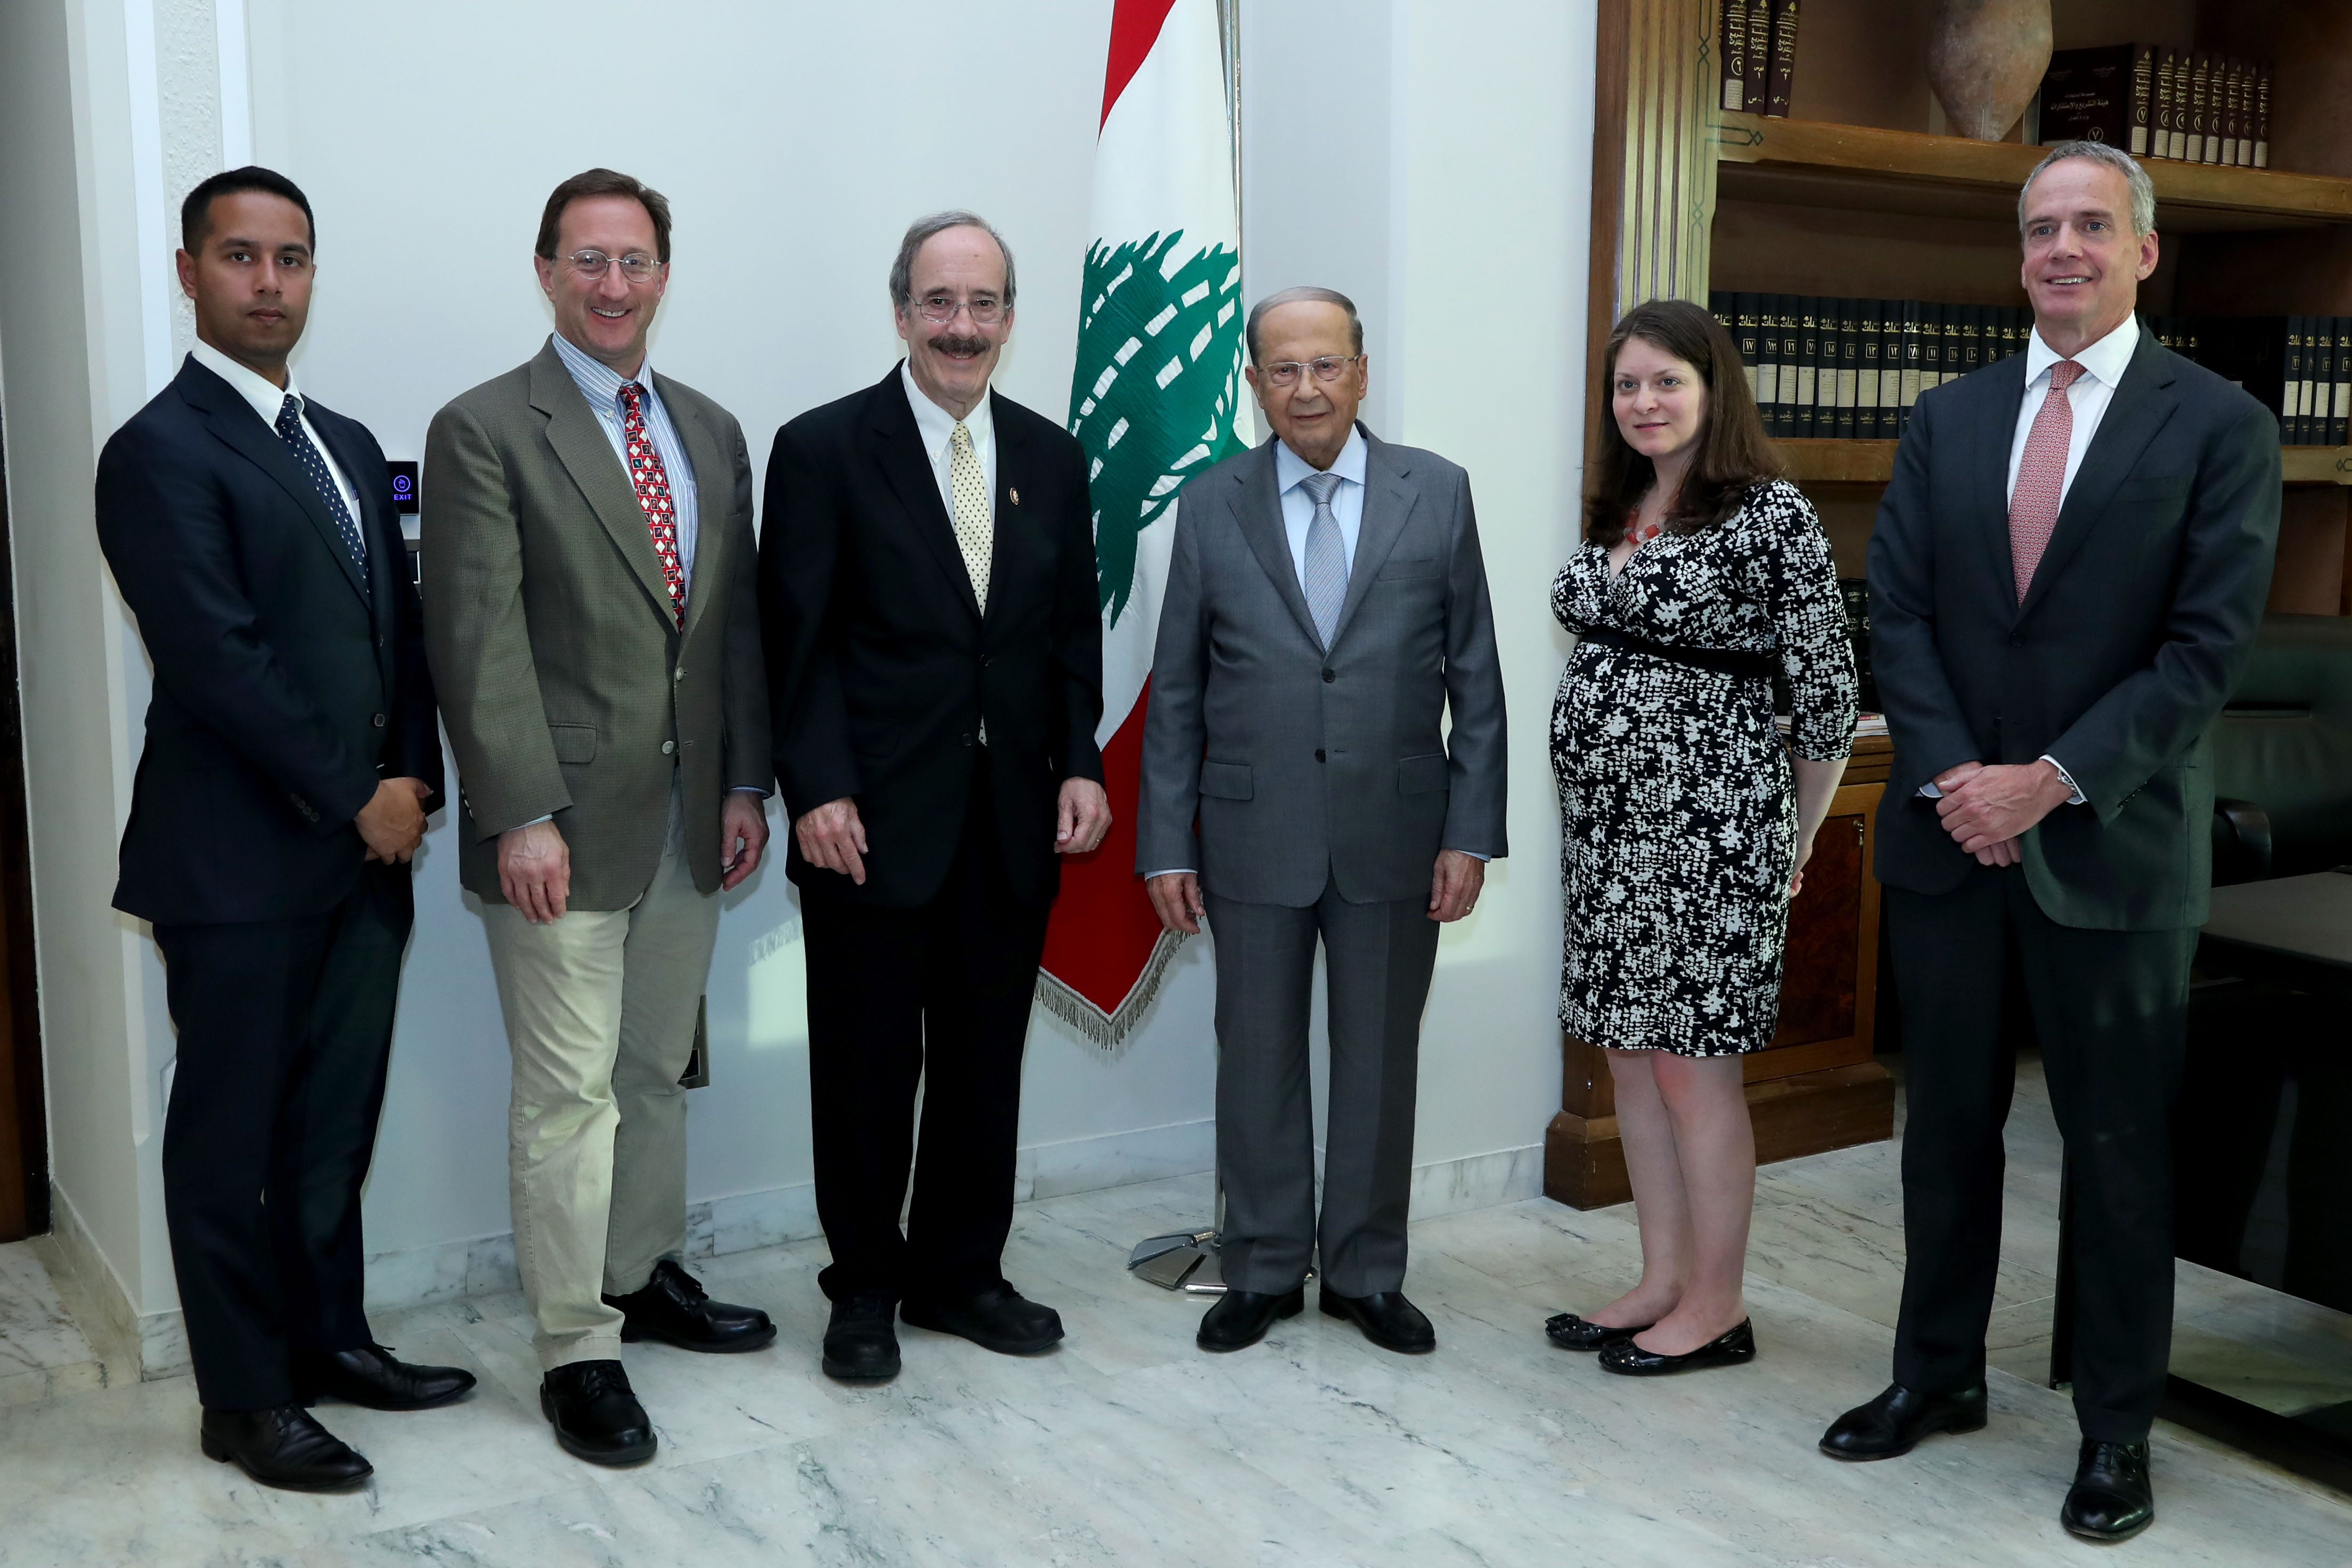 2 - Chairman of the Foreign Affairs Committee of the US Congress Mp Eliot Engel With Delegation 4